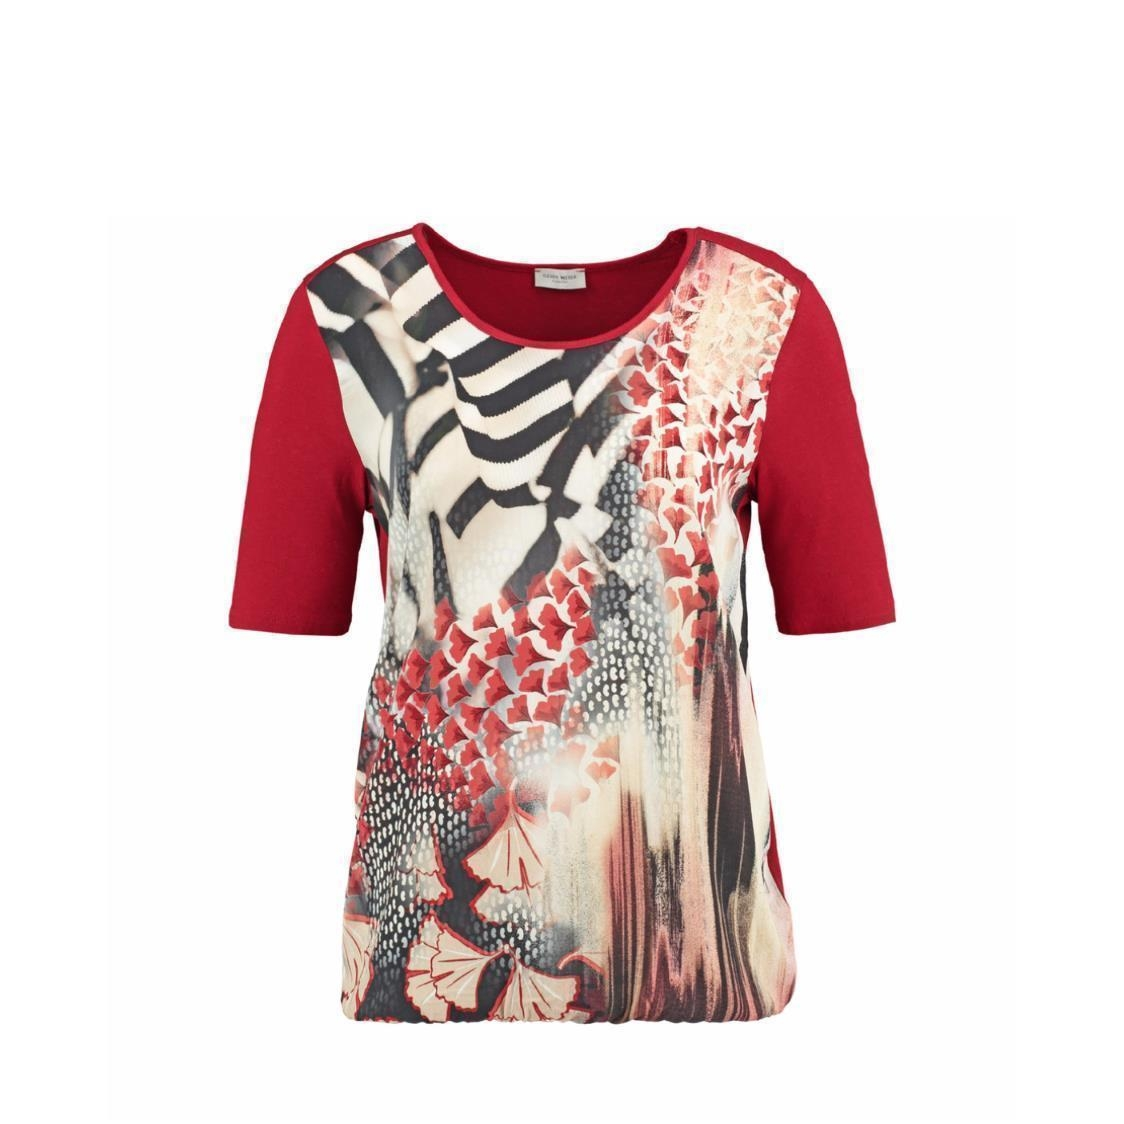 Top with Short Sleeve Panelled Pattern